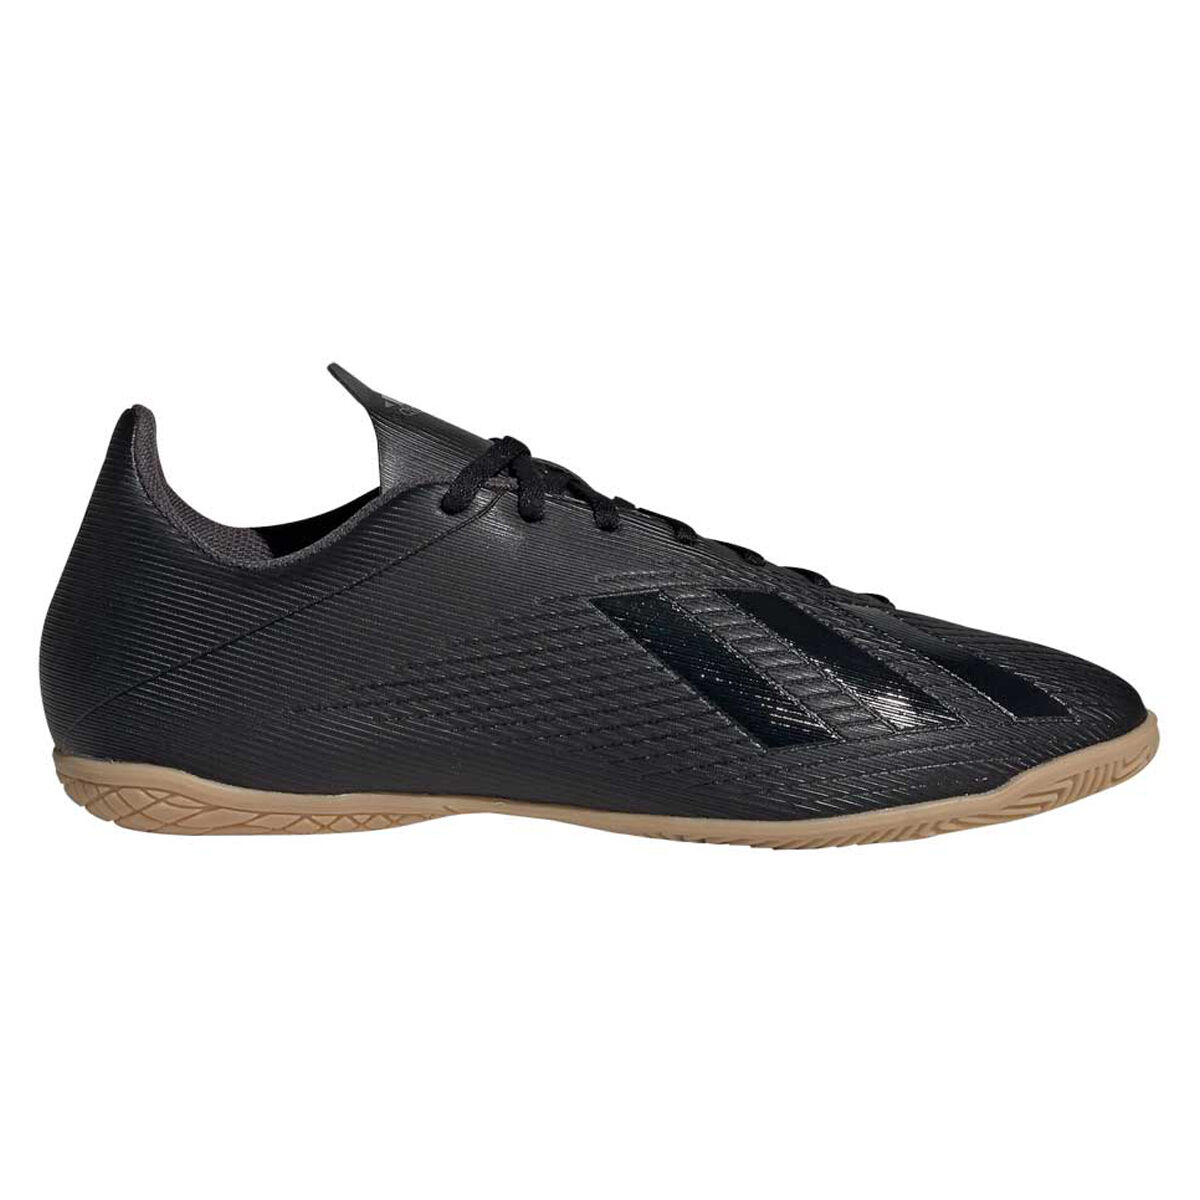 adidas X 19.4 Indoor Soccer Shoes